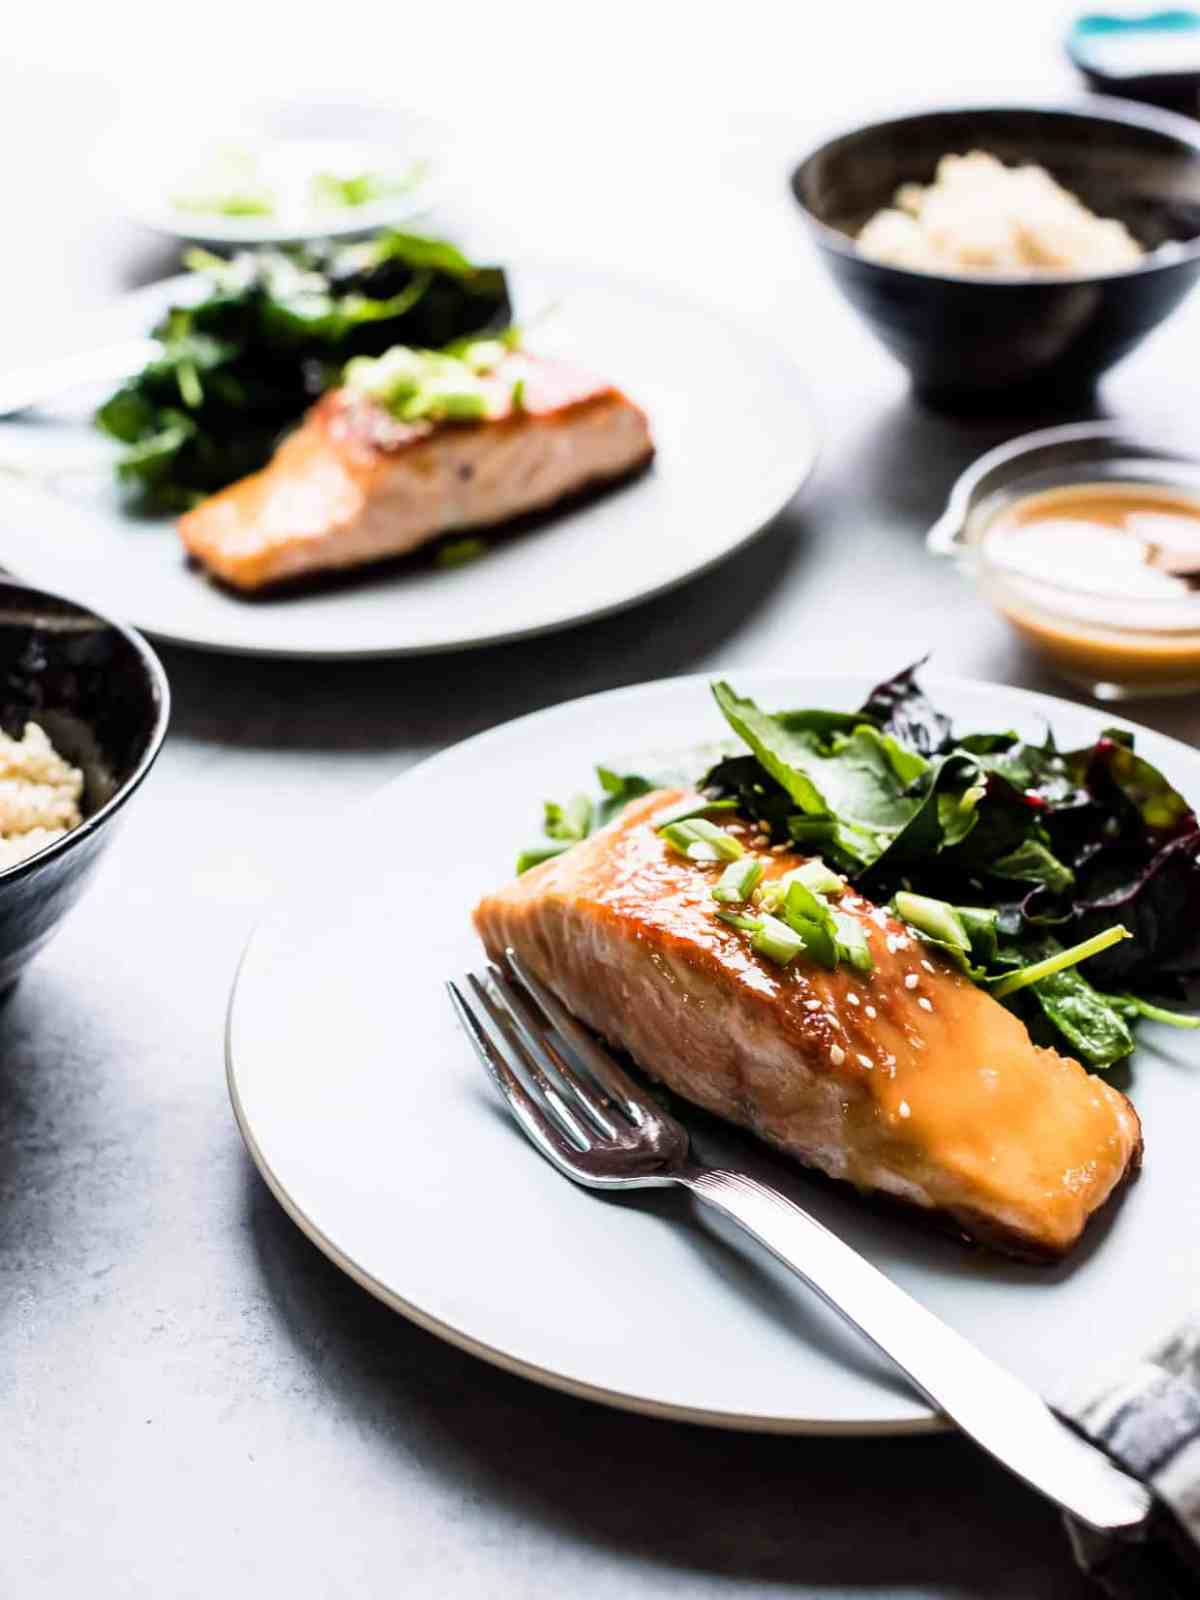 Miso Maple Glazed Salmon on a white plate served with a salad of wilted greens.